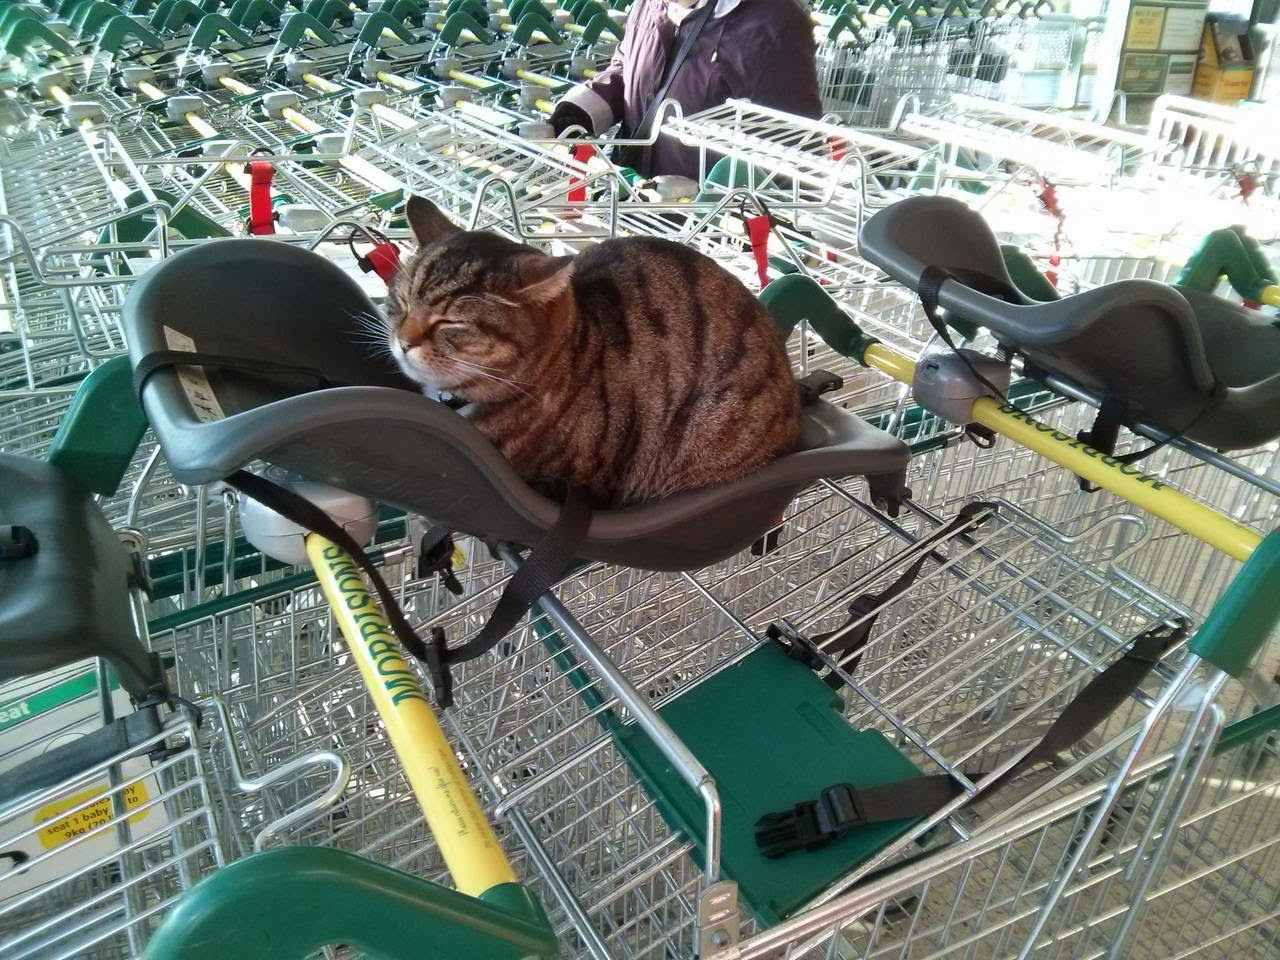 Funny cats - part 87 (40 pics + 10 gifs), cat sits on trolley